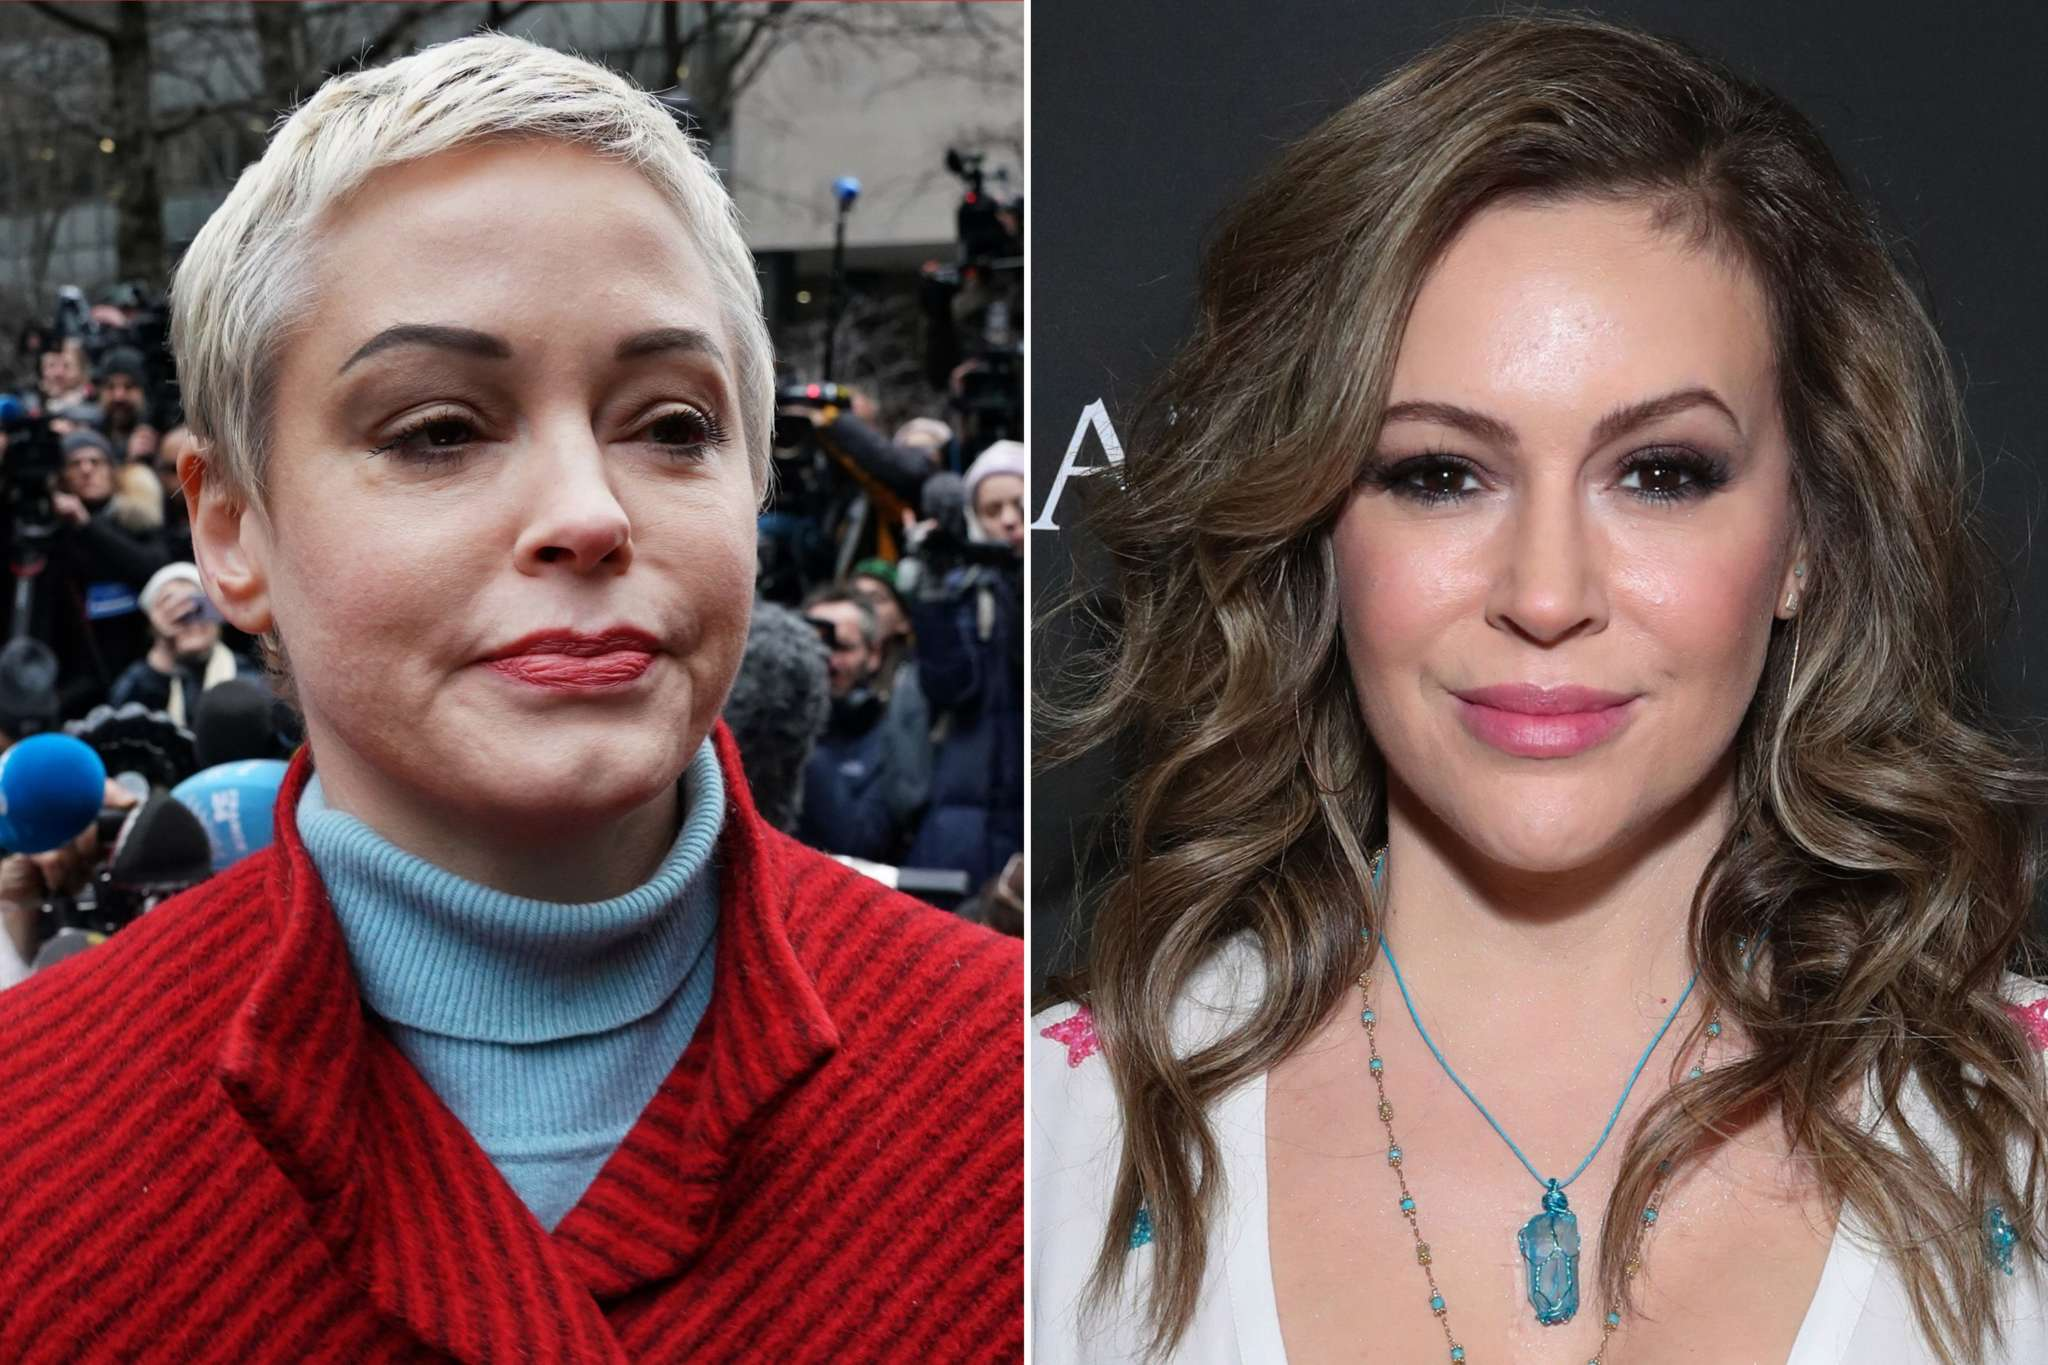 rose-mcgowan-claps-back-at-fraud-alyssa-milano-says-she-was-toxic-on-the-set-of-charmed-and-more